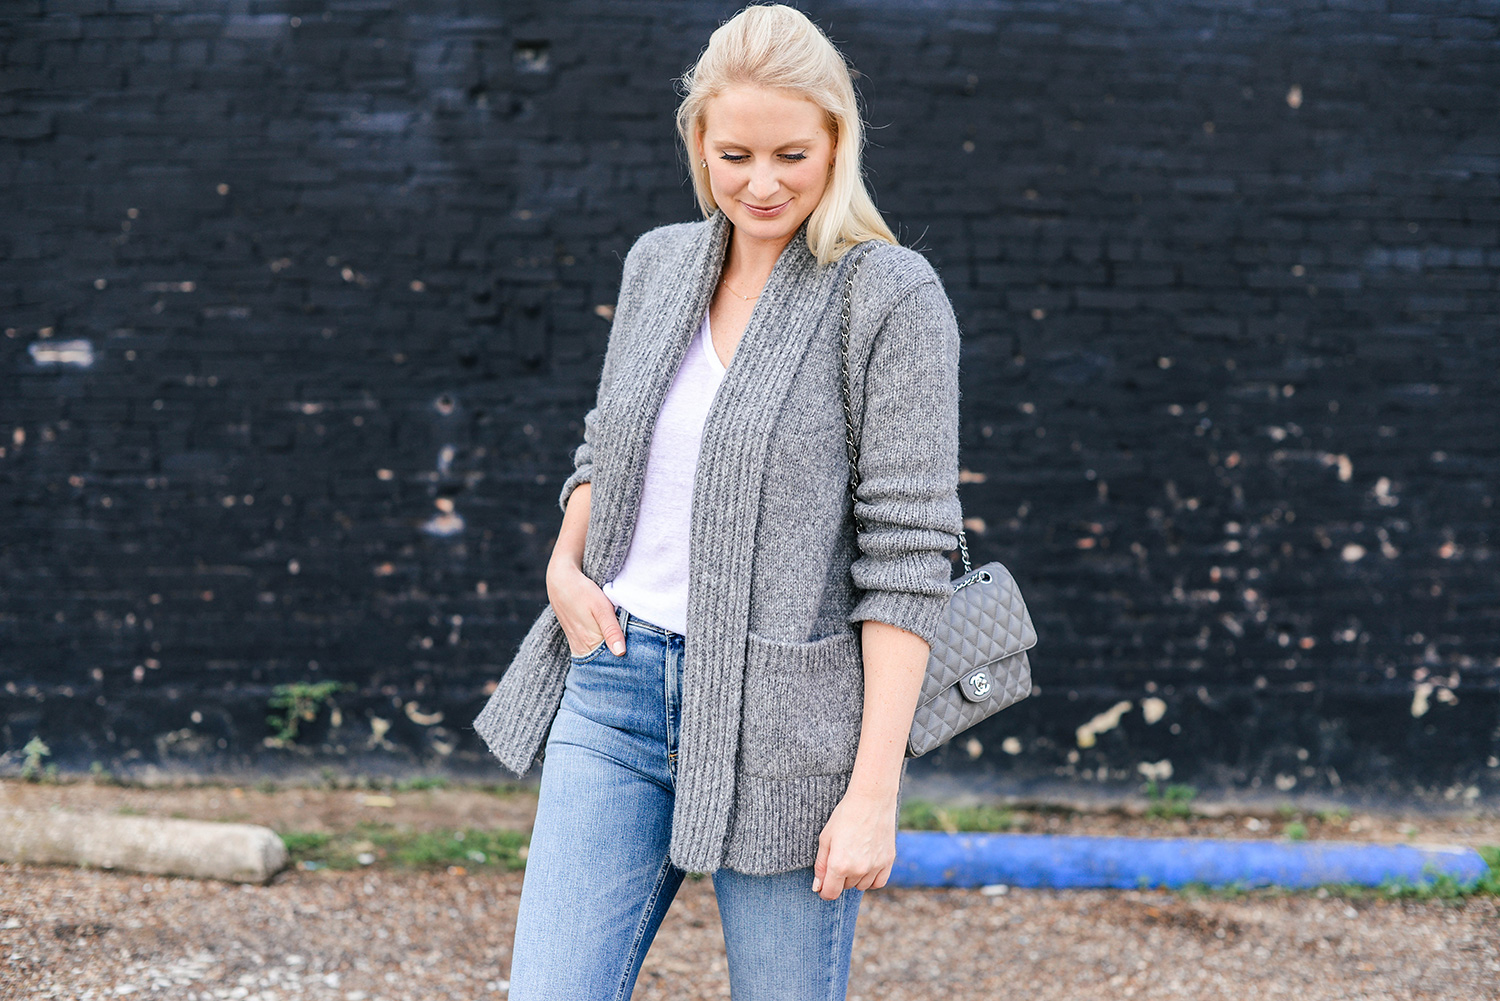 Cozy Cardigan | The Style Scribe